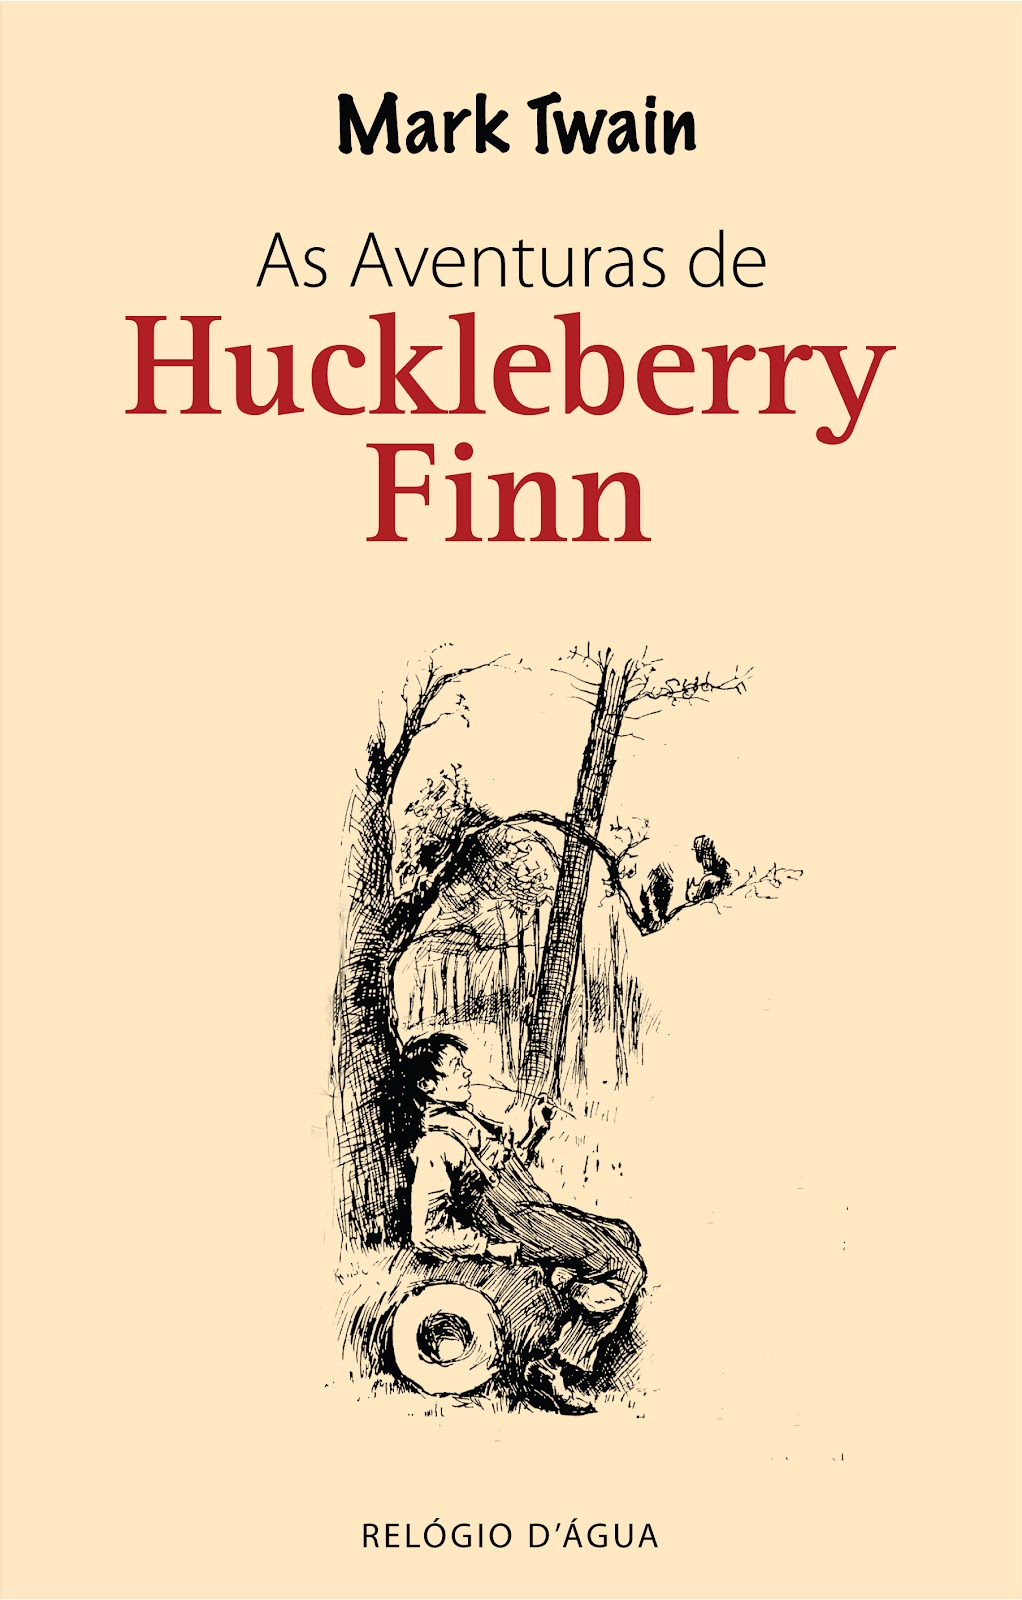 seriousness and satire in the adventures of huckleberry finn by mark twain The adventures of huckleberry finn has divided opinion since its publication although it's a lively tale of huckleberry finn running away from home to experience memorable encounters, there have been claims of racism within the book's narrative jim, finn's loyal companion, being referred to .